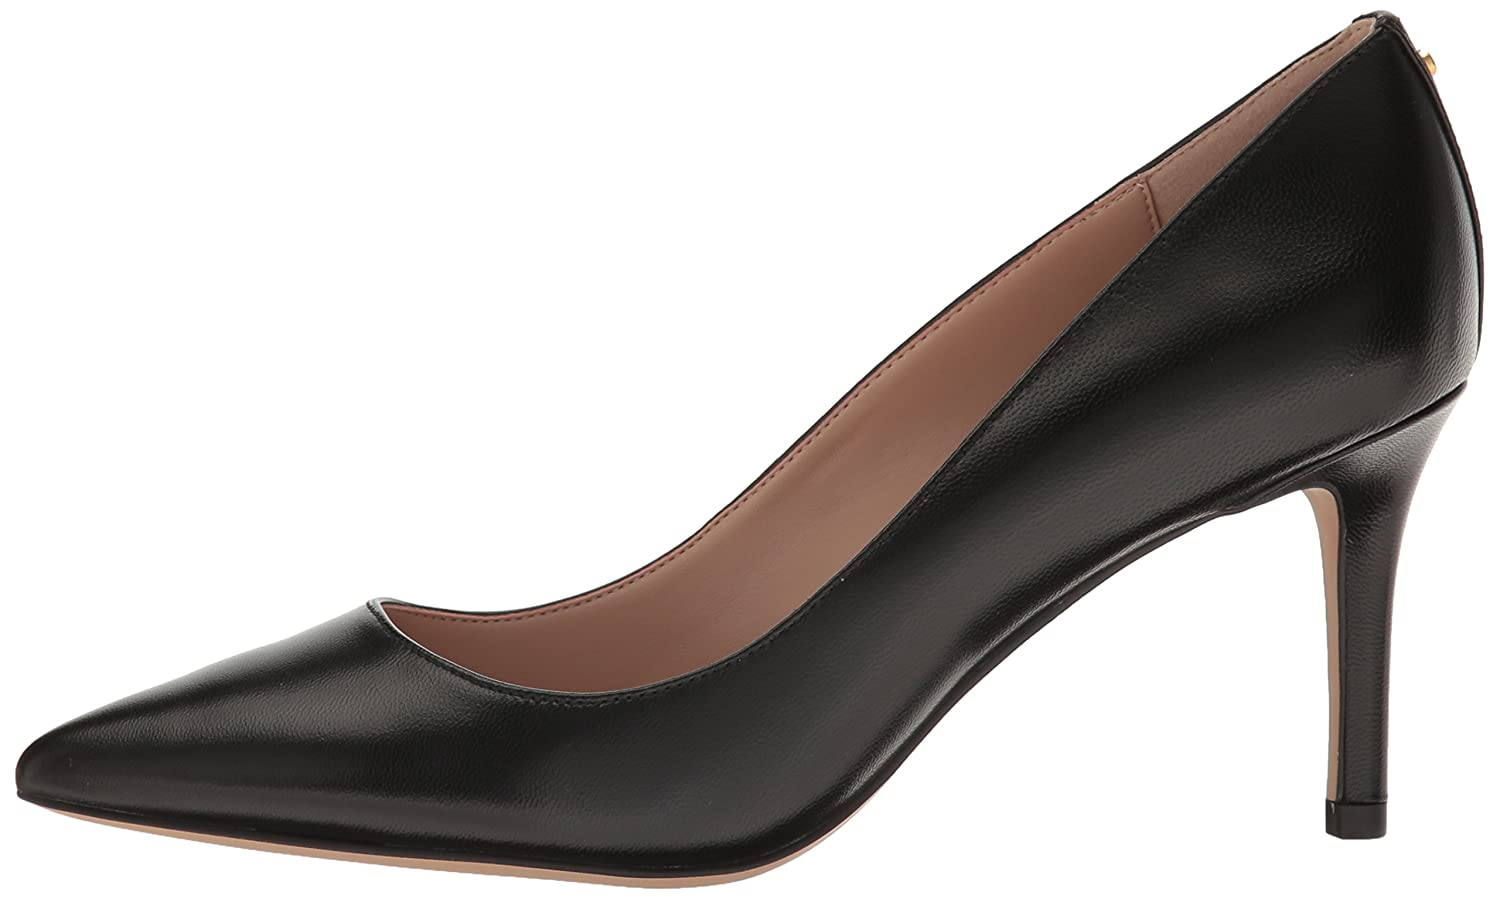 BCBGeneration Women's Marci Kidskin Shoe Pump B01N9KBES5 6 B(M) US|Black Leather